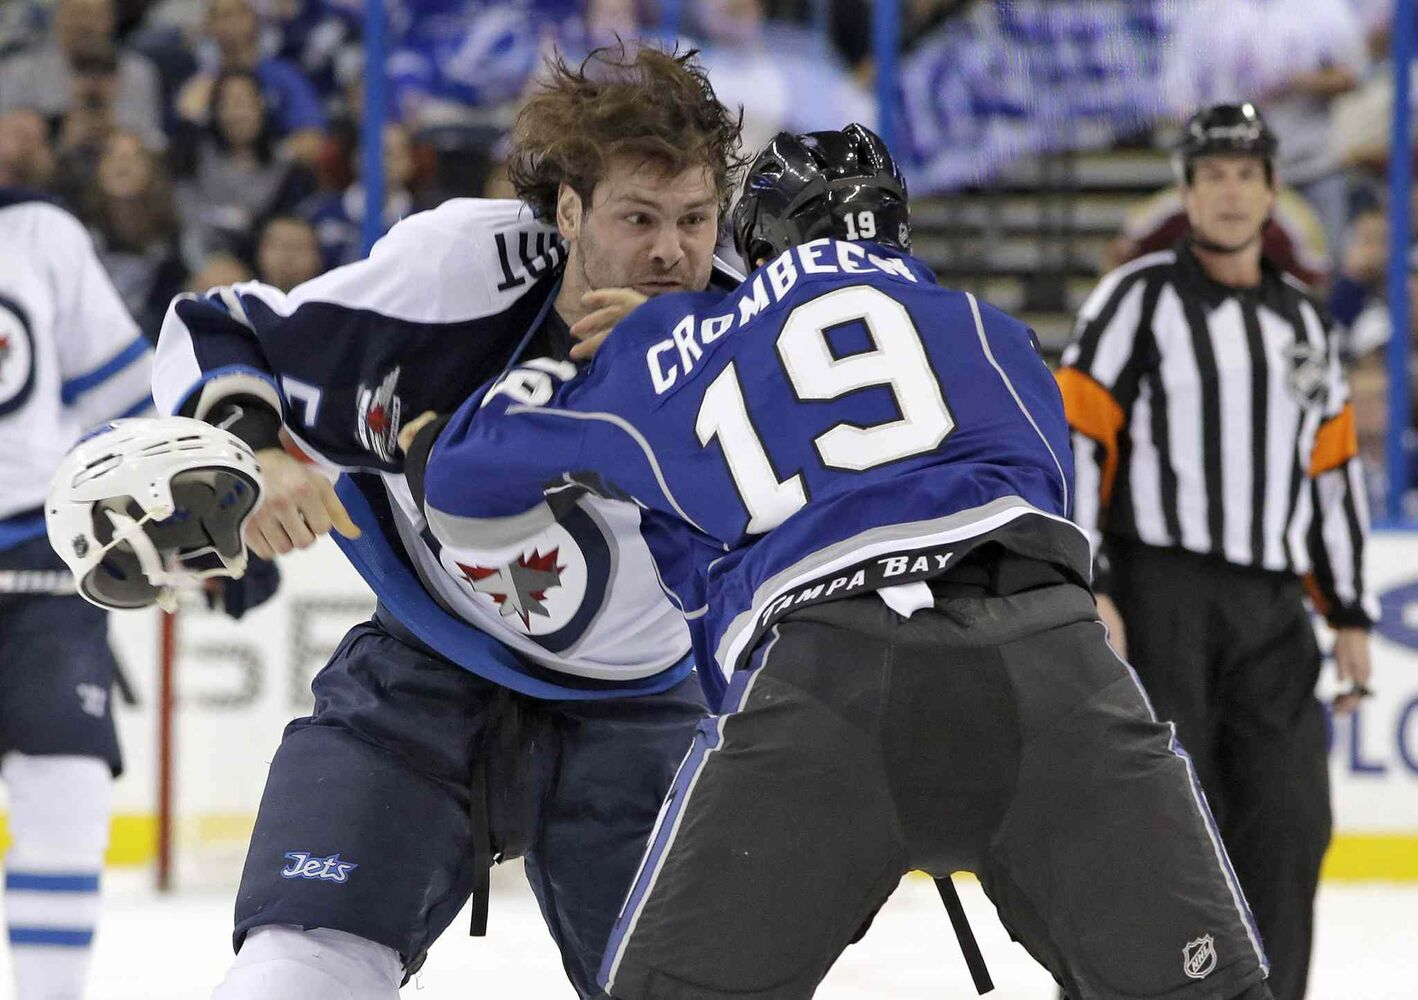 Winnipeg Jets defenceman Mark Stuart (left) loses his helmet during his fight with Tampa Bay Lightning winger B.J. Crombeen during the first period.